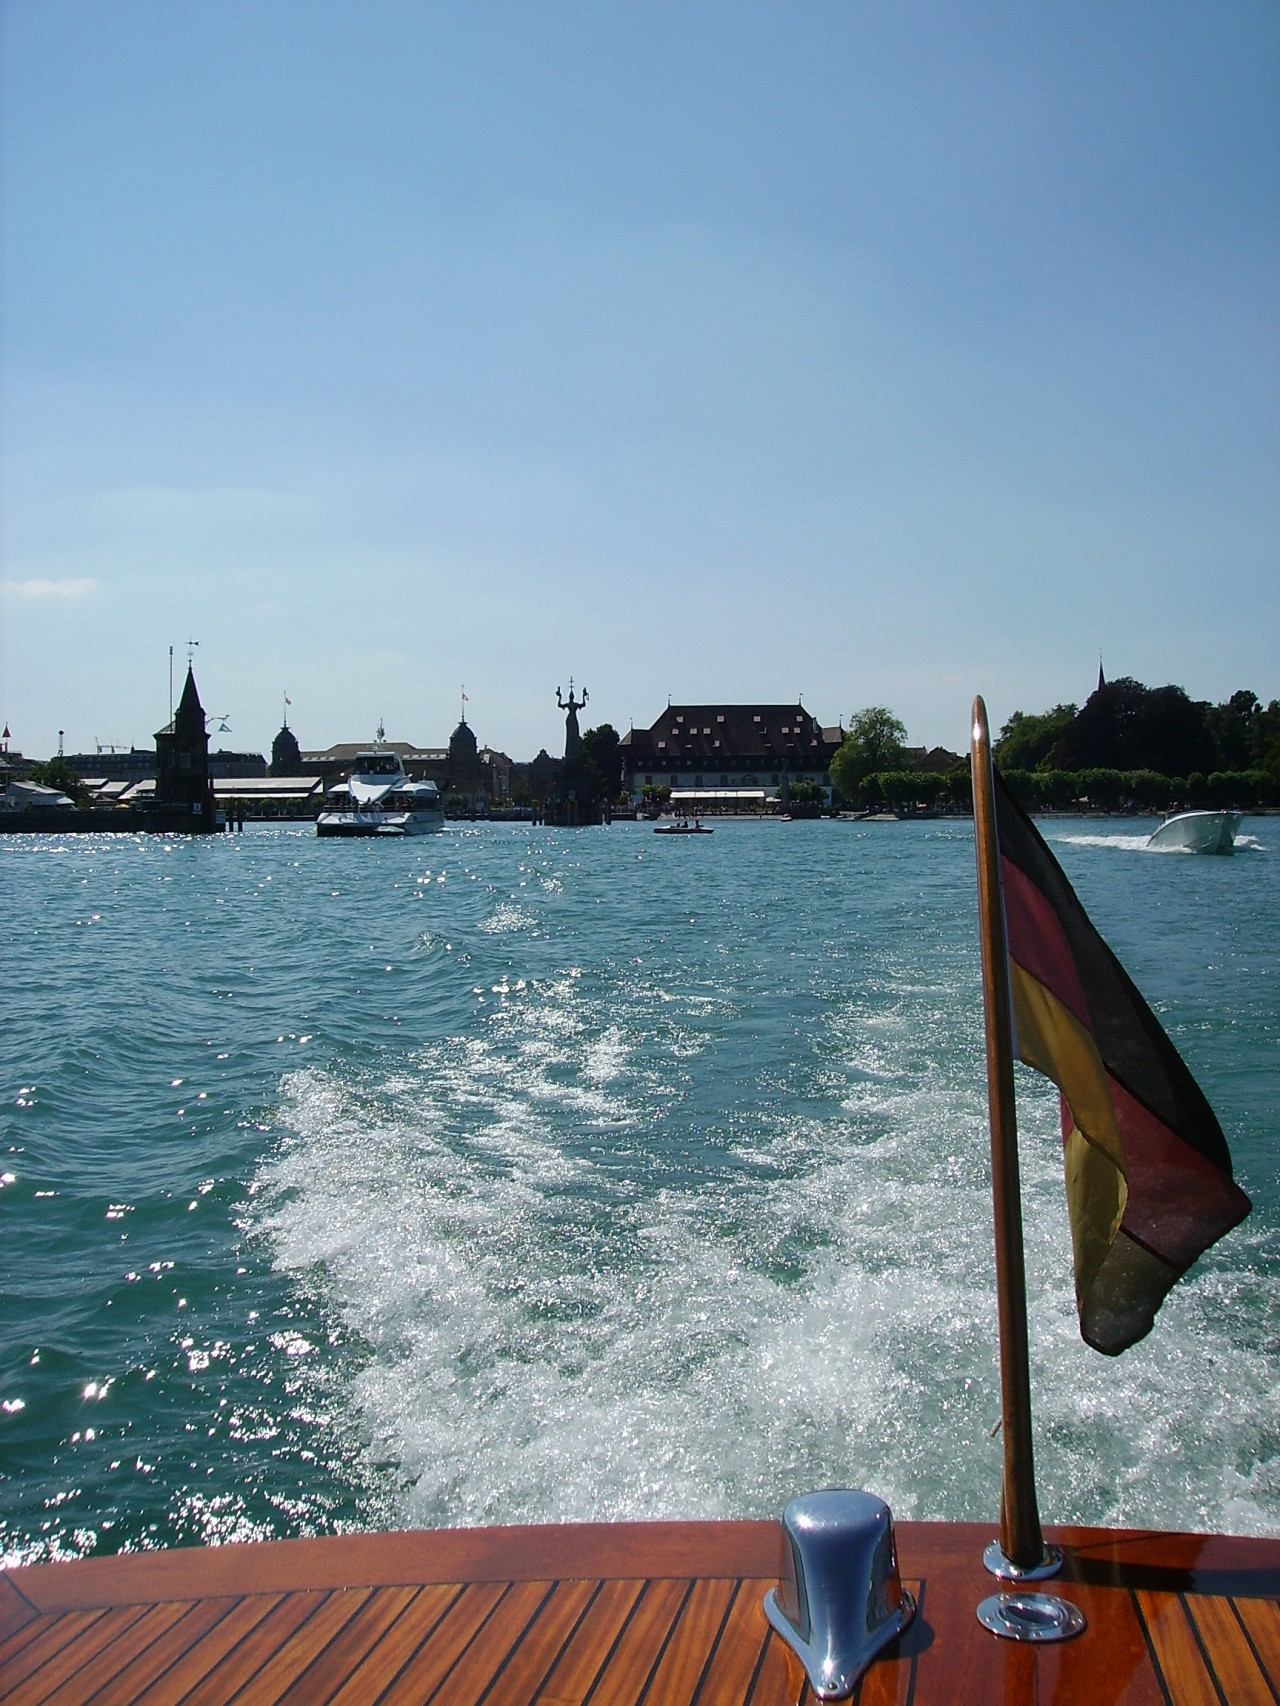 Boat trip on the Lake Constance